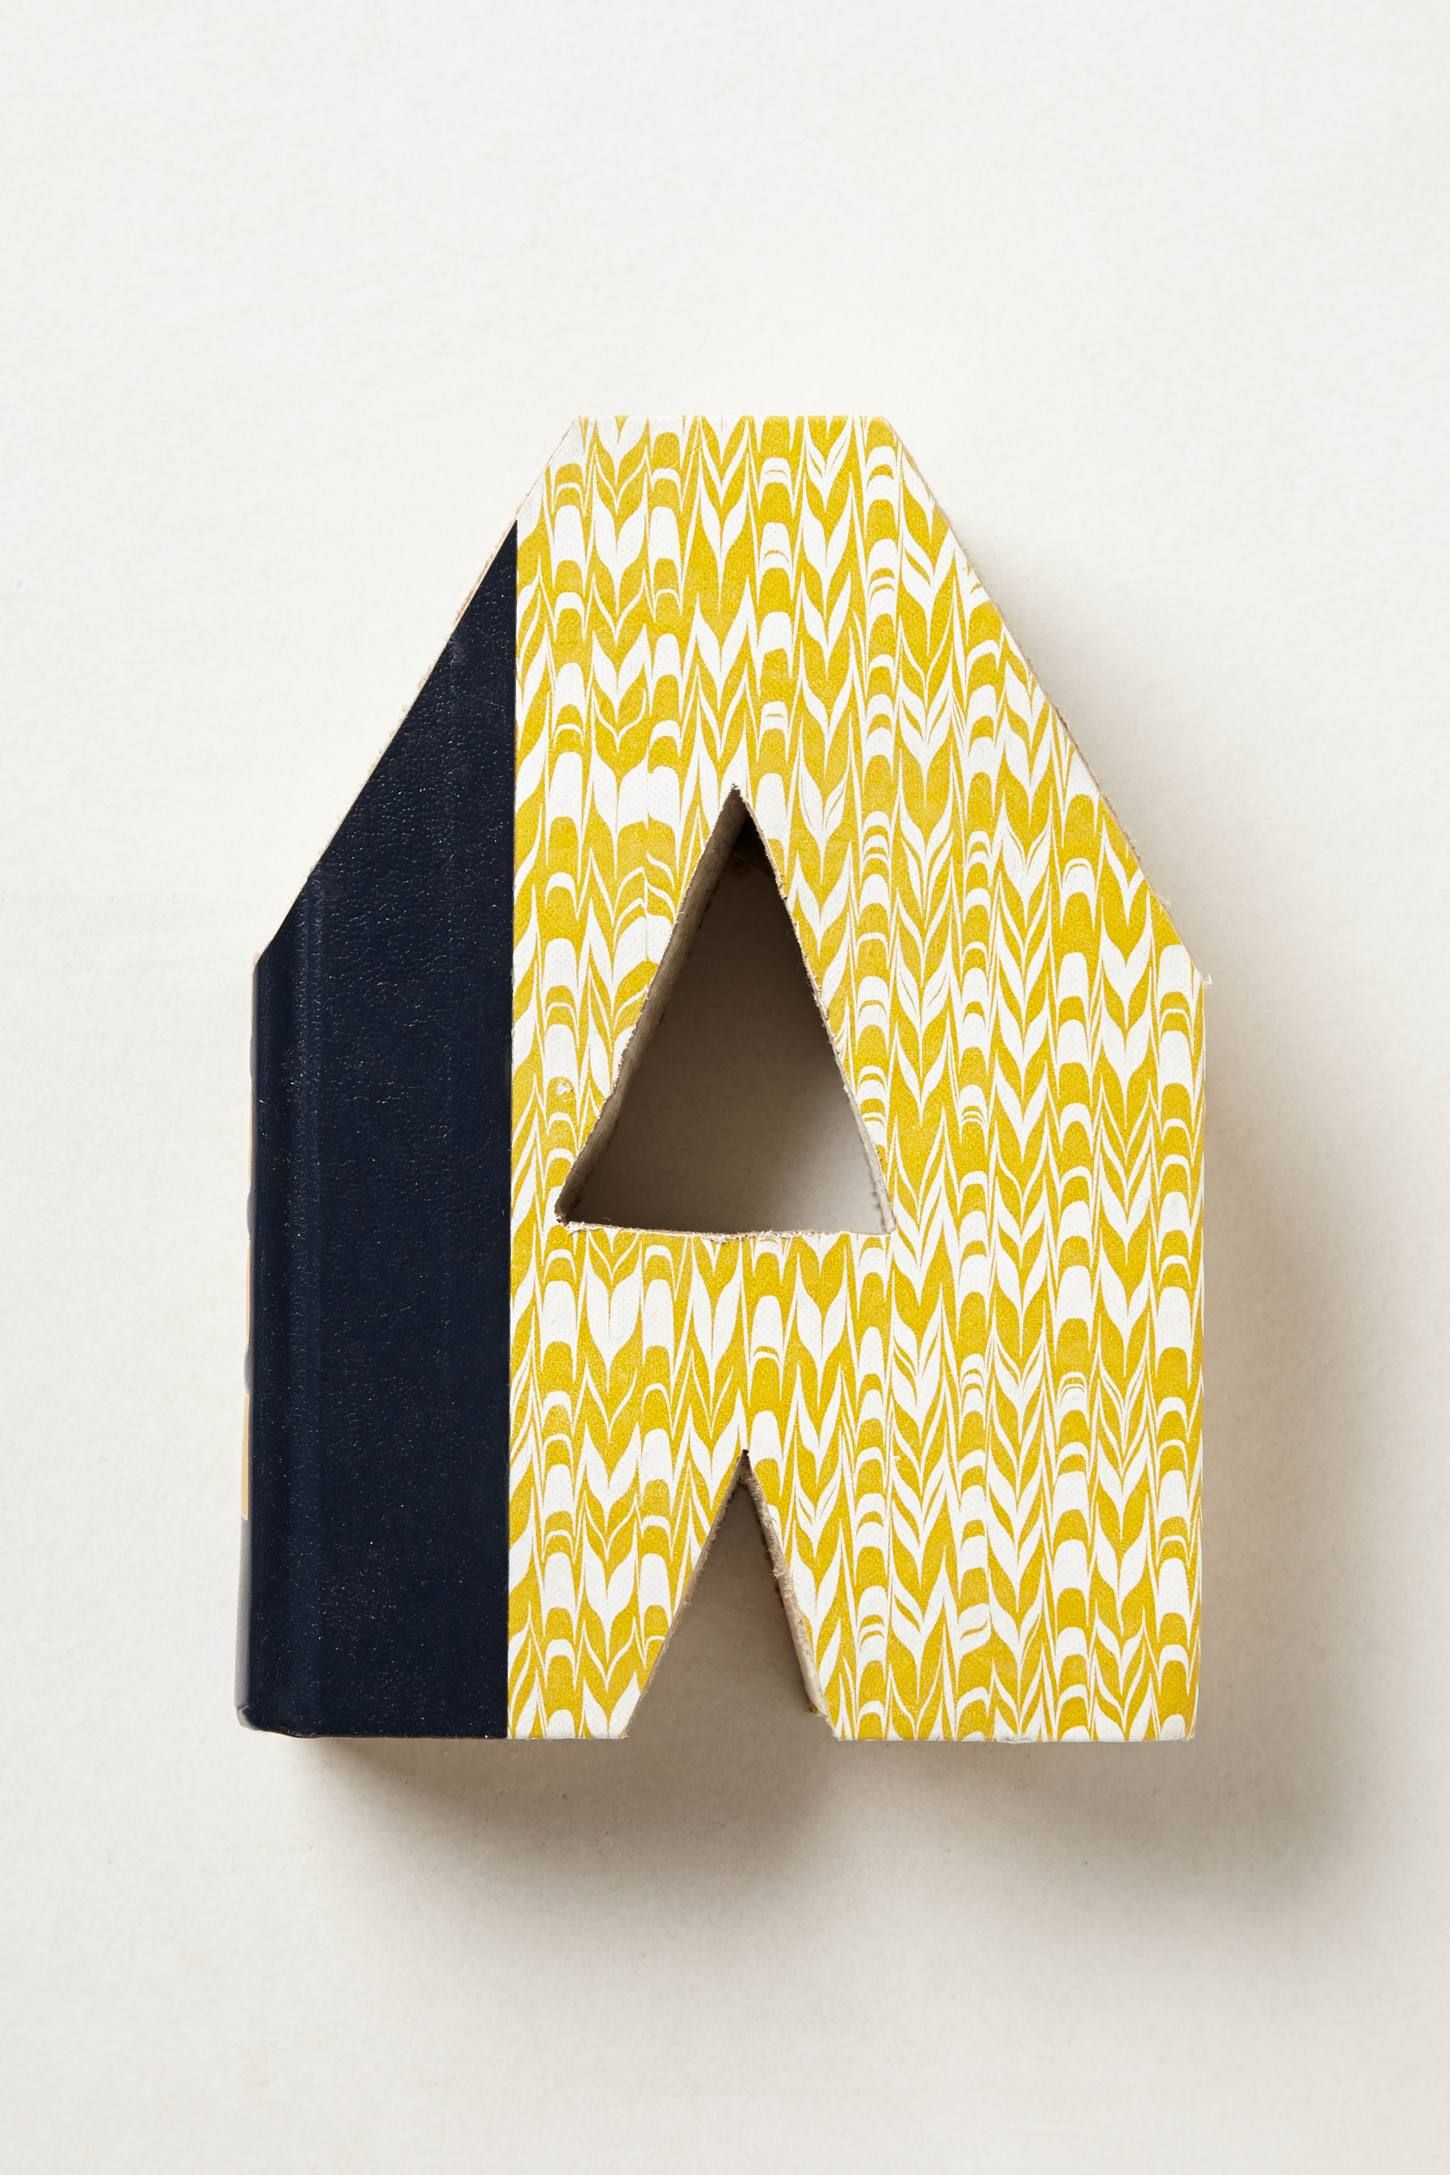 cool letters made out of old books | products i\'m eye-ing ...